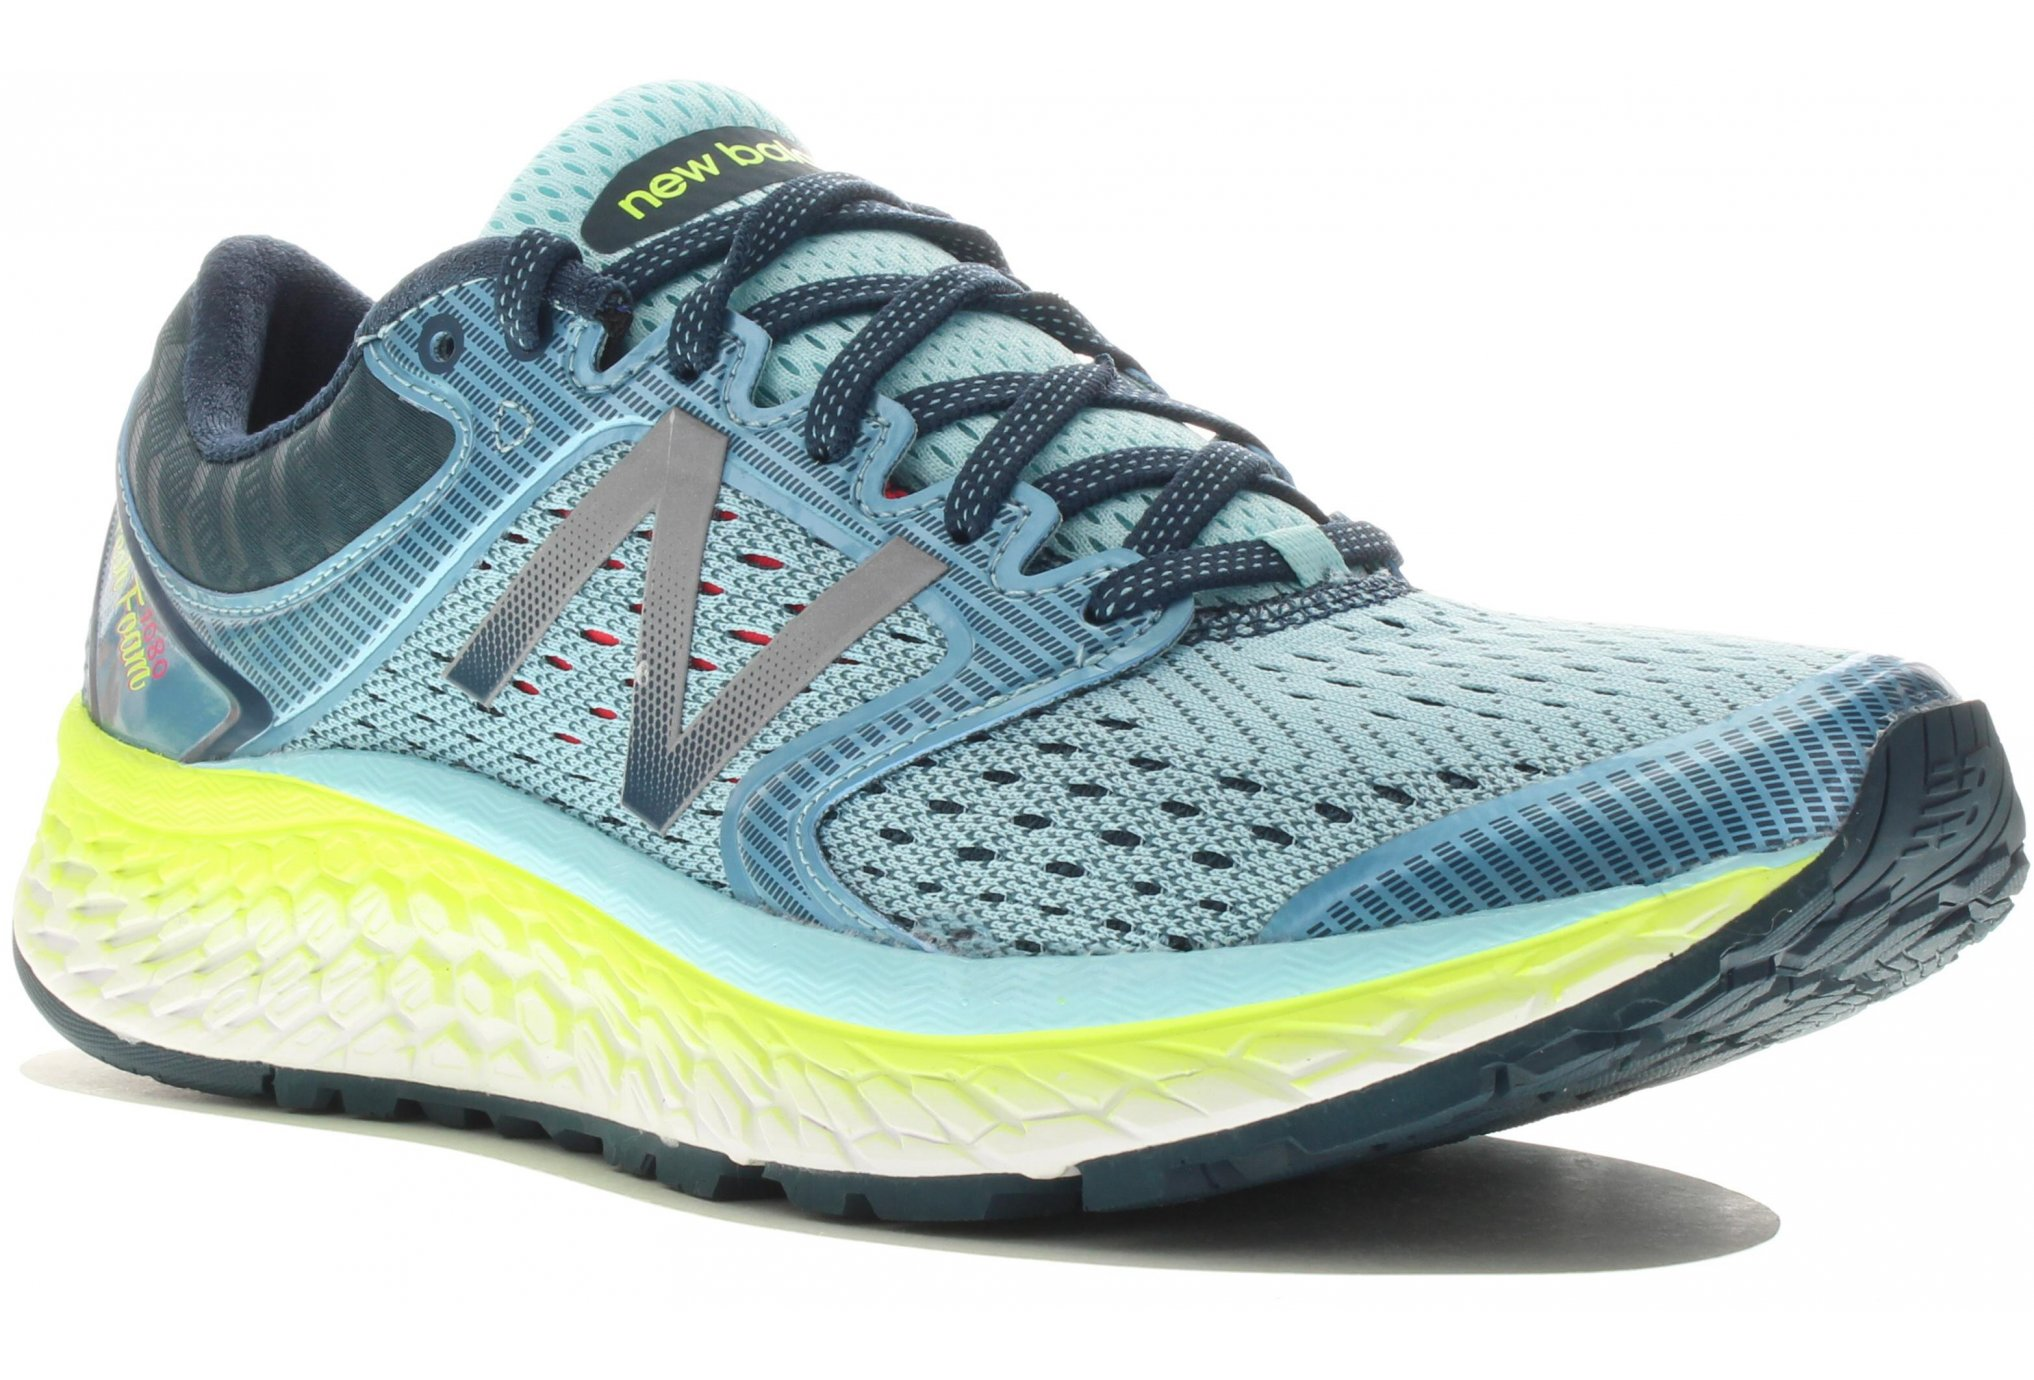 New Balance Fresh Foam 1080 V7 - B déstockage running